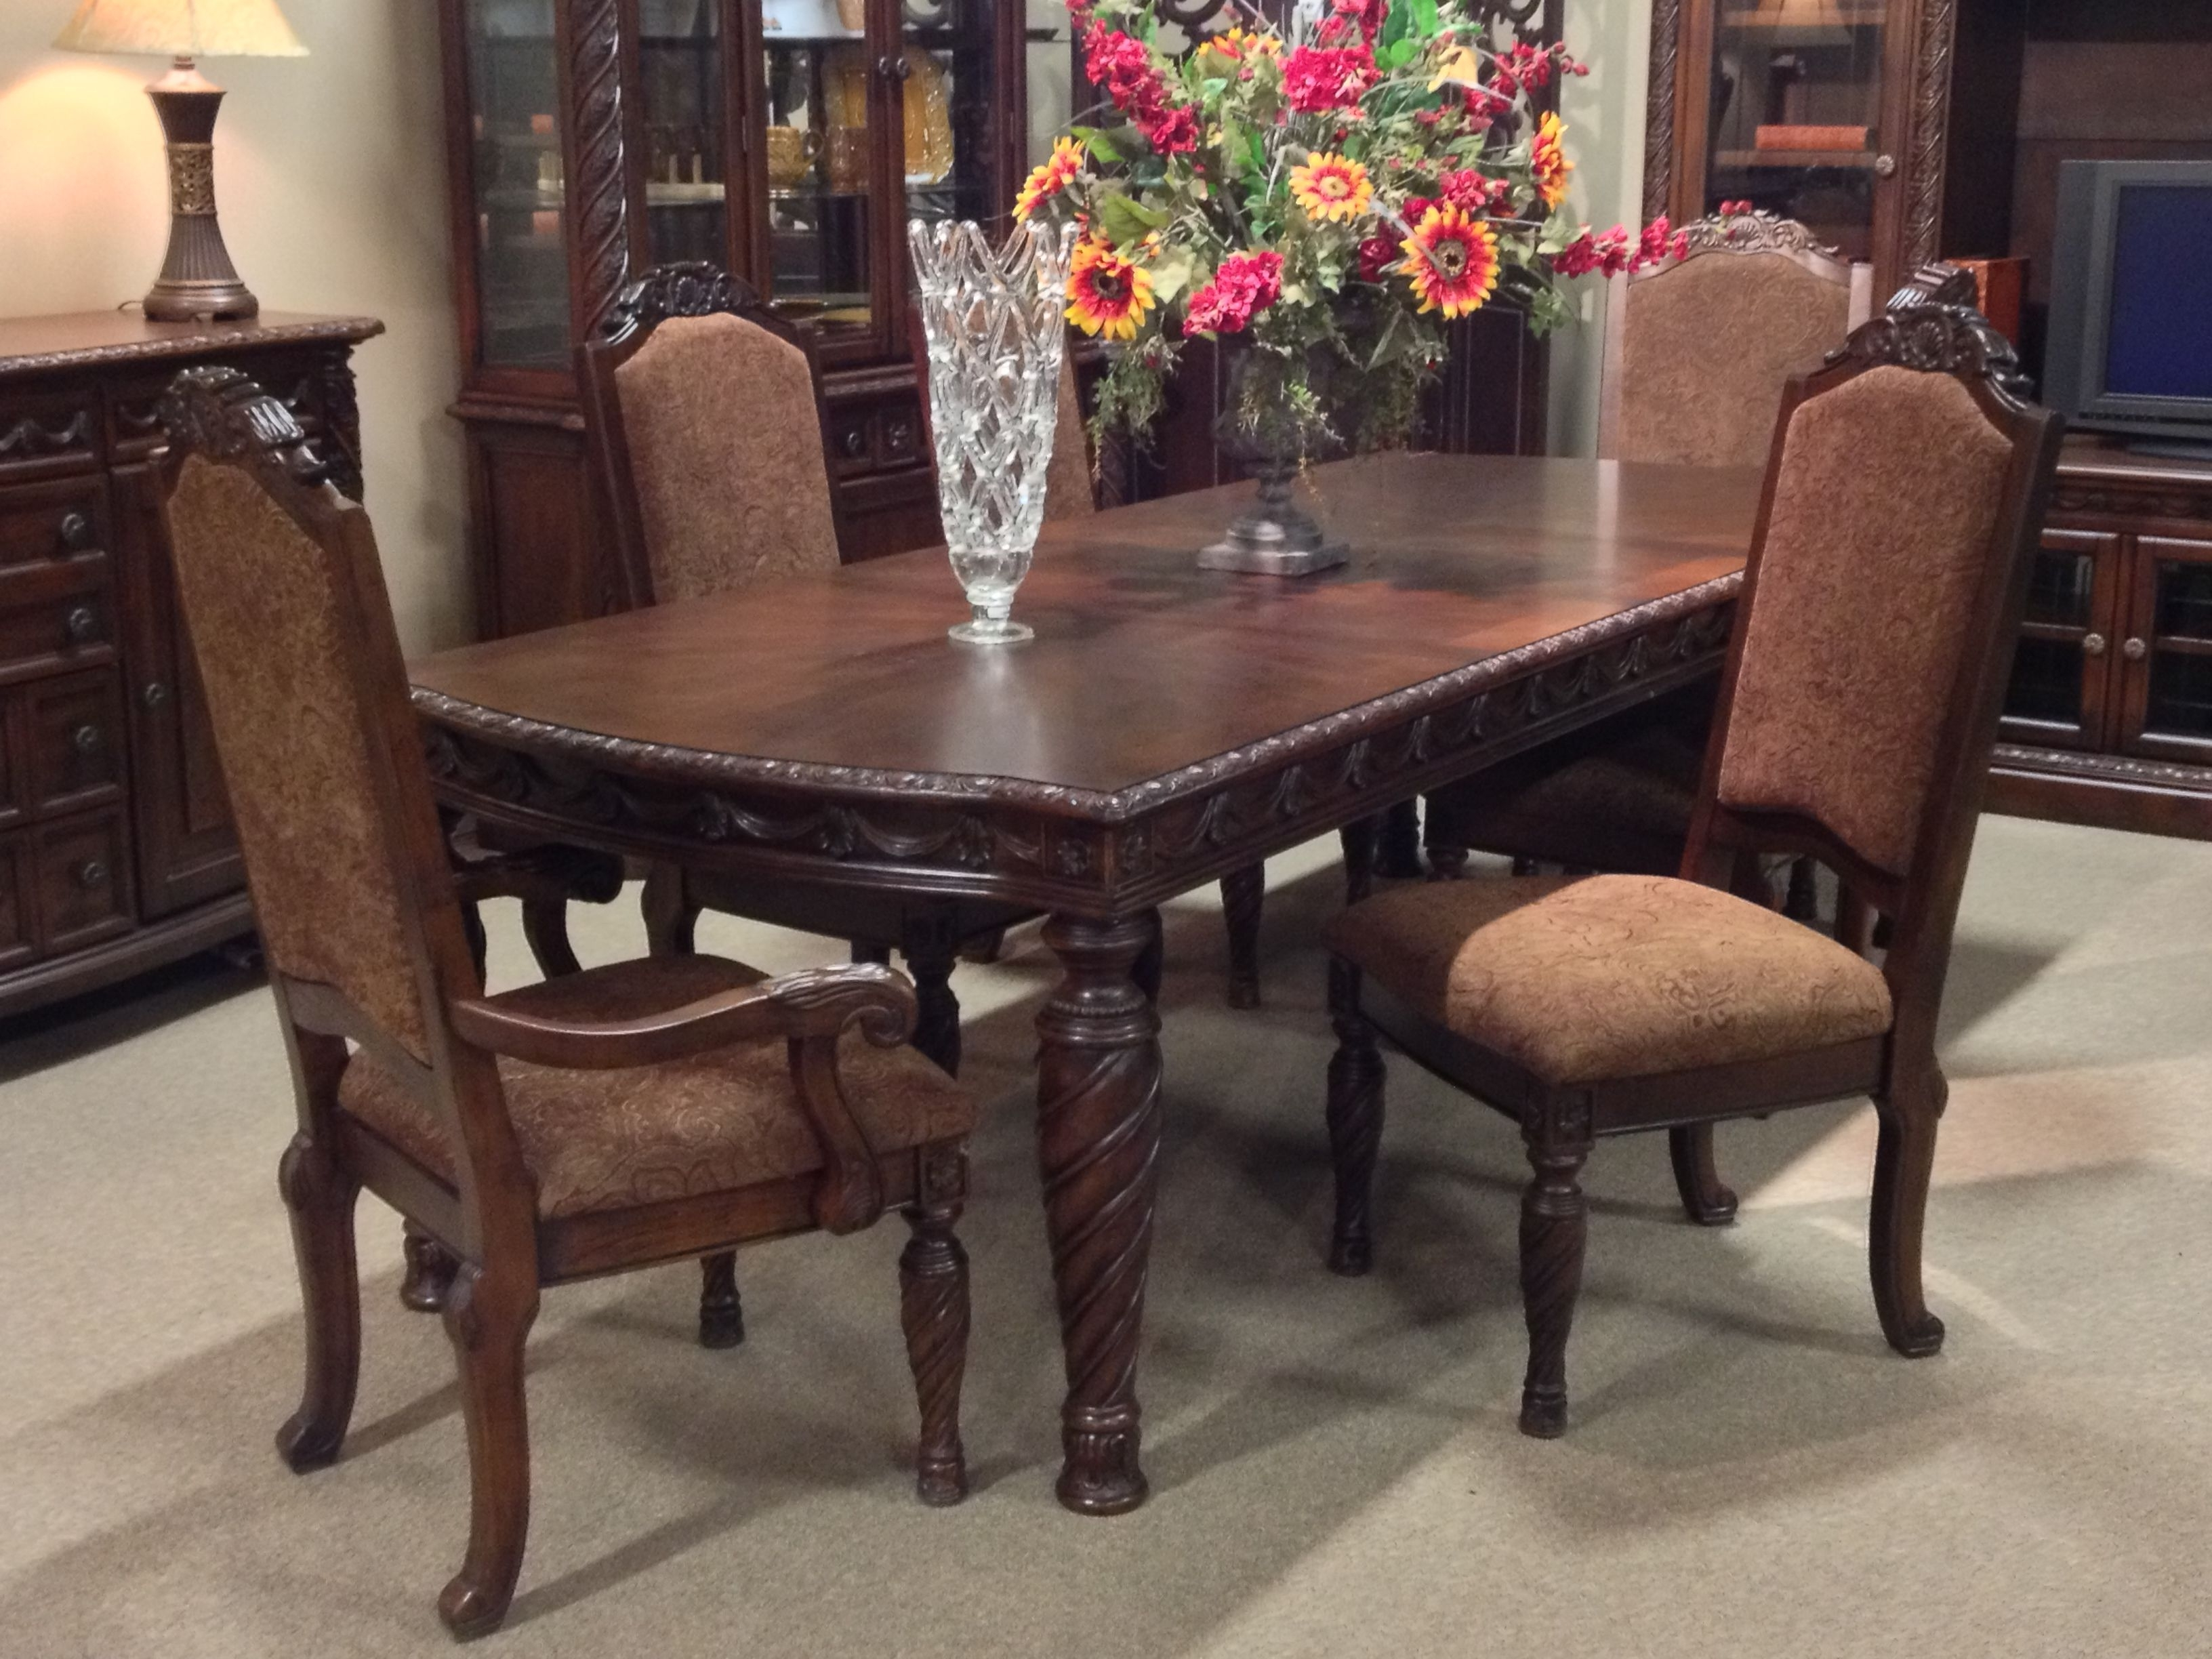 Trendy Laurent 7 Piece Rectangle Dining Sets With Wood Chairs In North Shore 7 Piece #dining Room Set At Ashley #furniture In (View 8 of 25)